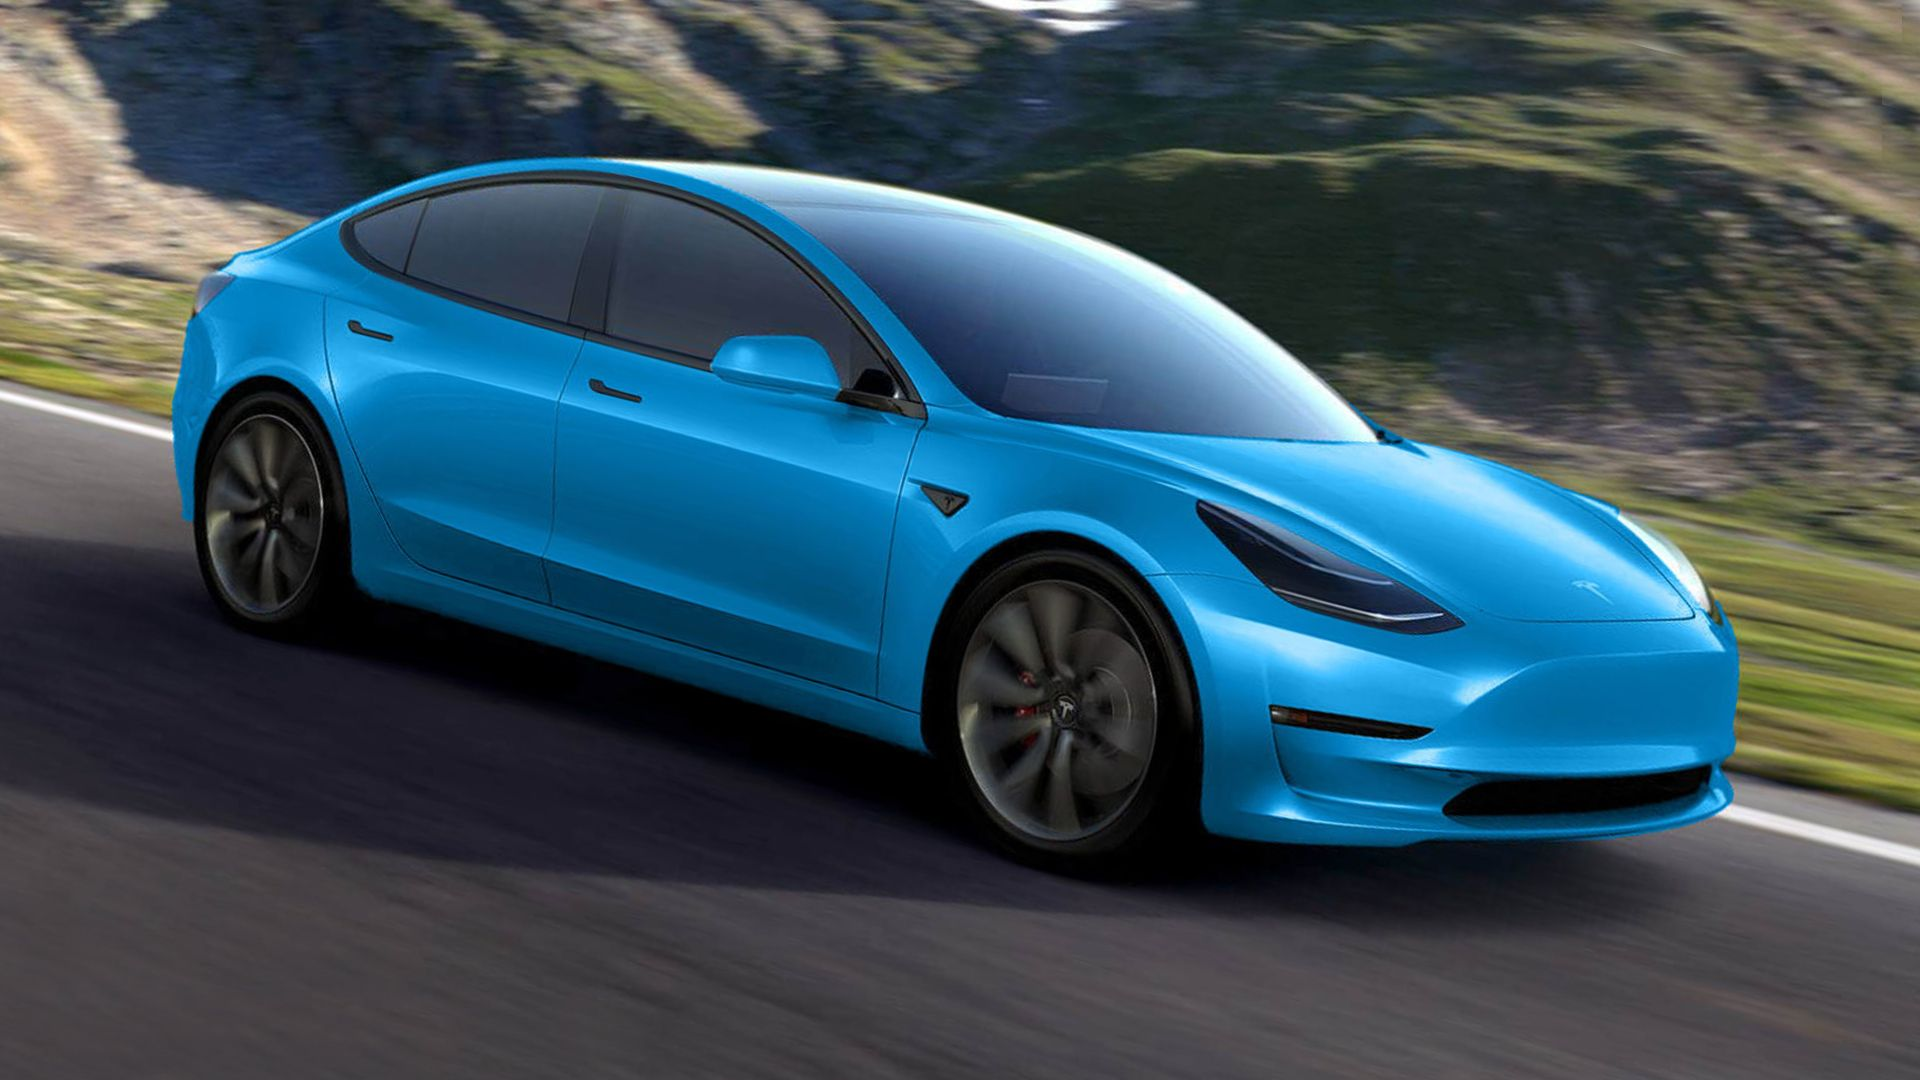 2020 Tesla Model 3 Changes Redesign Hd Tesla Model Tesla My Dream Car